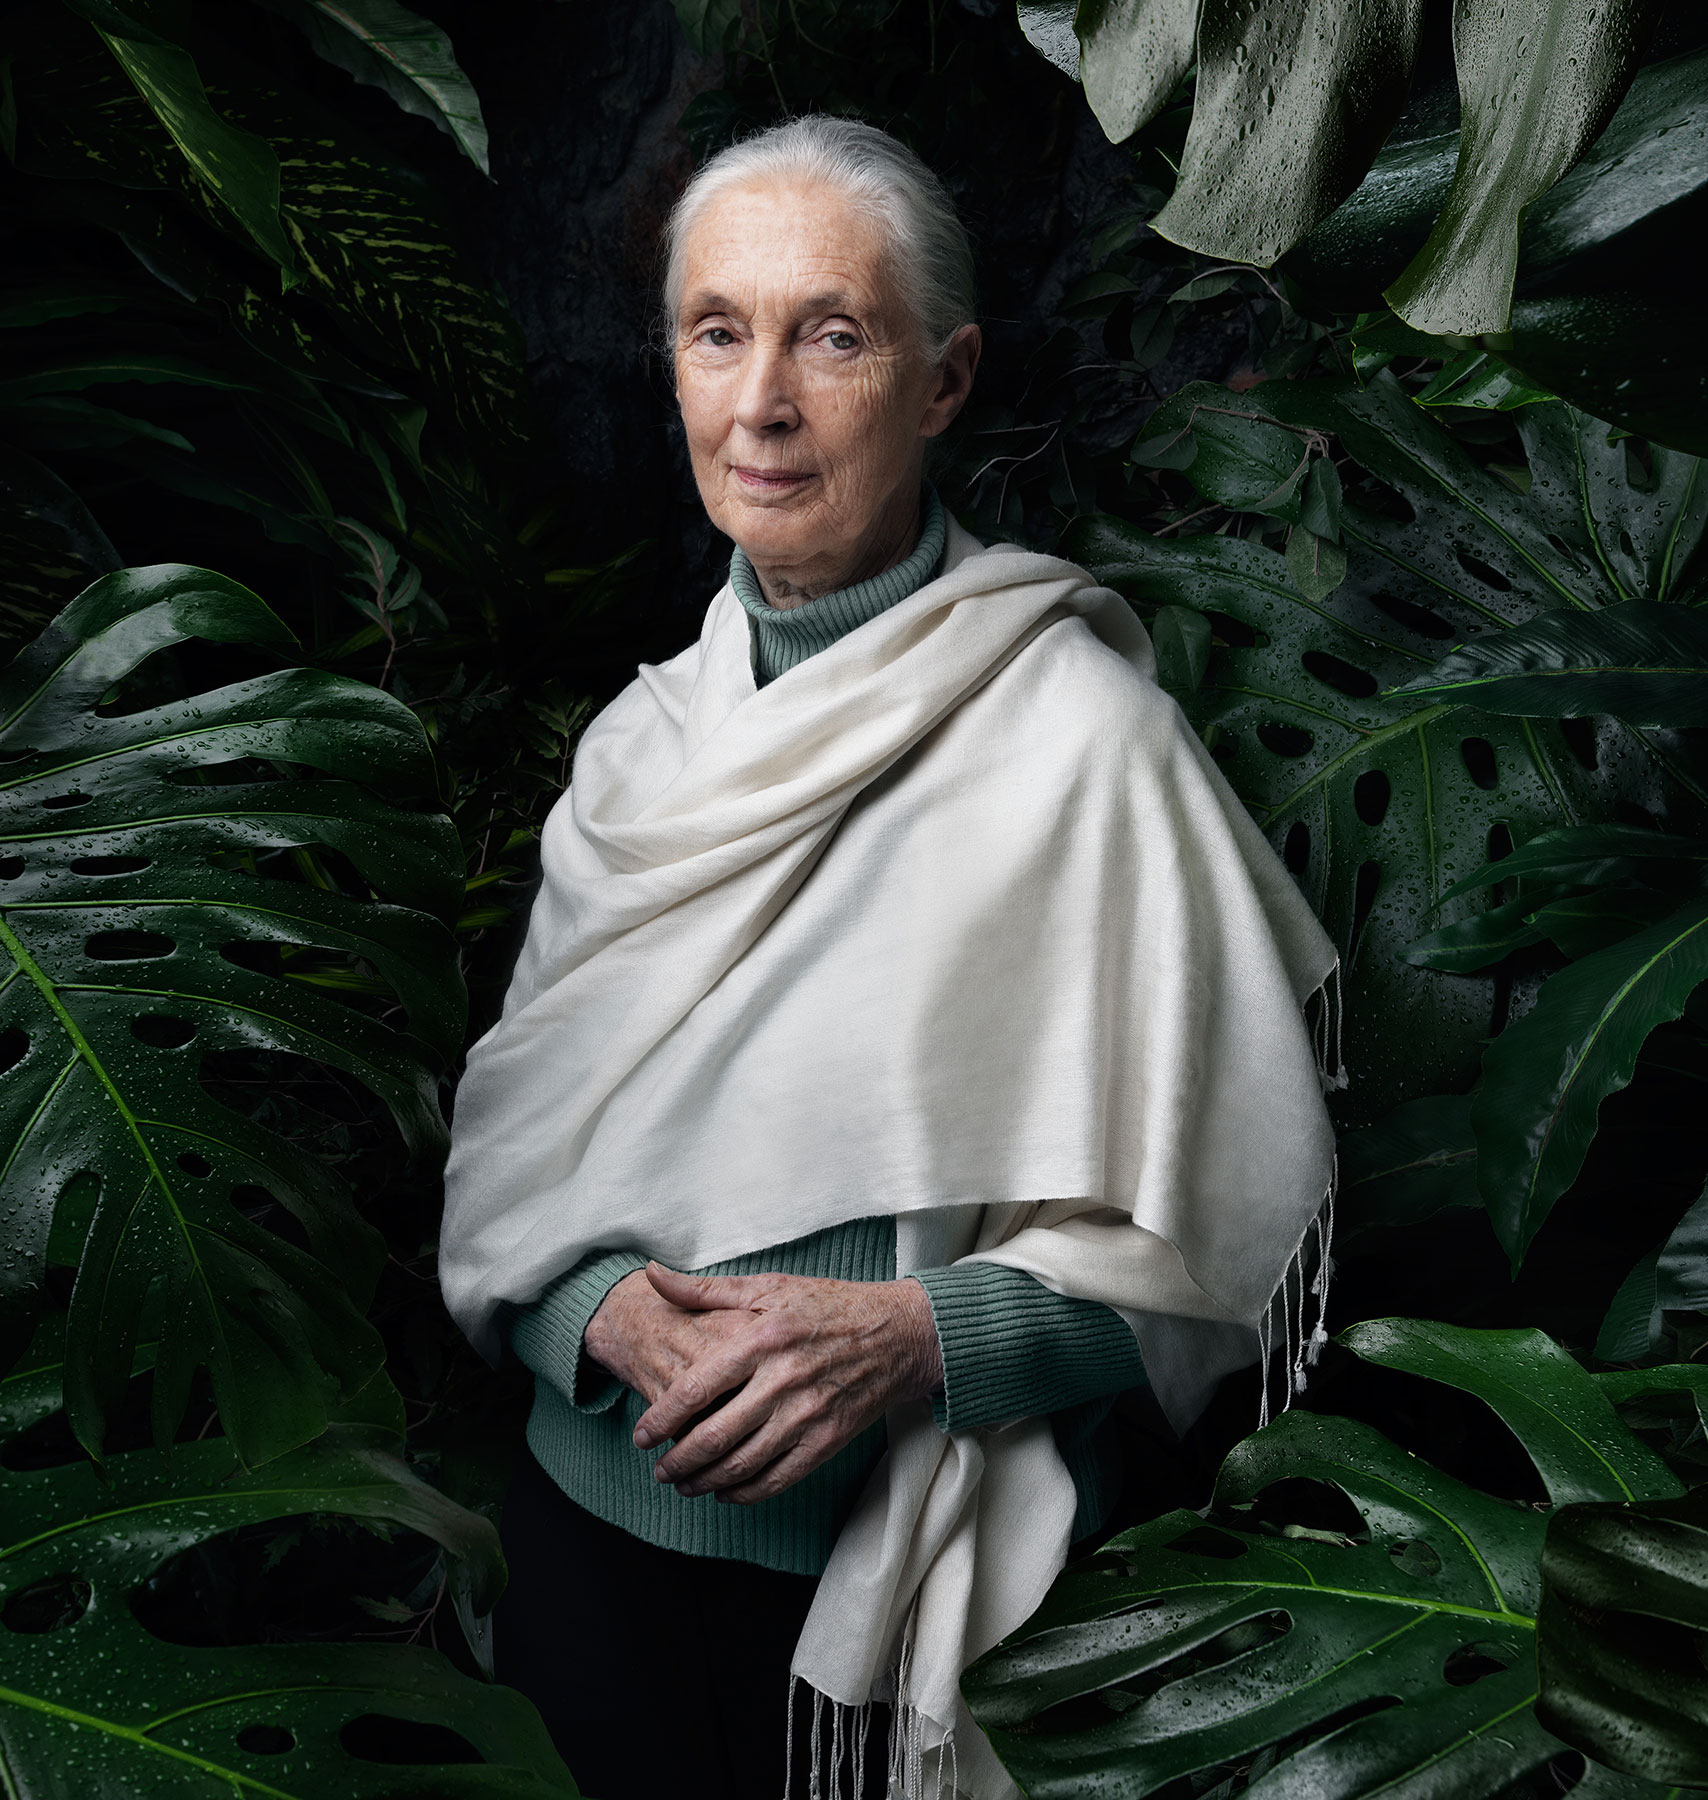 Jane Goodall, primatologist and anthropologist